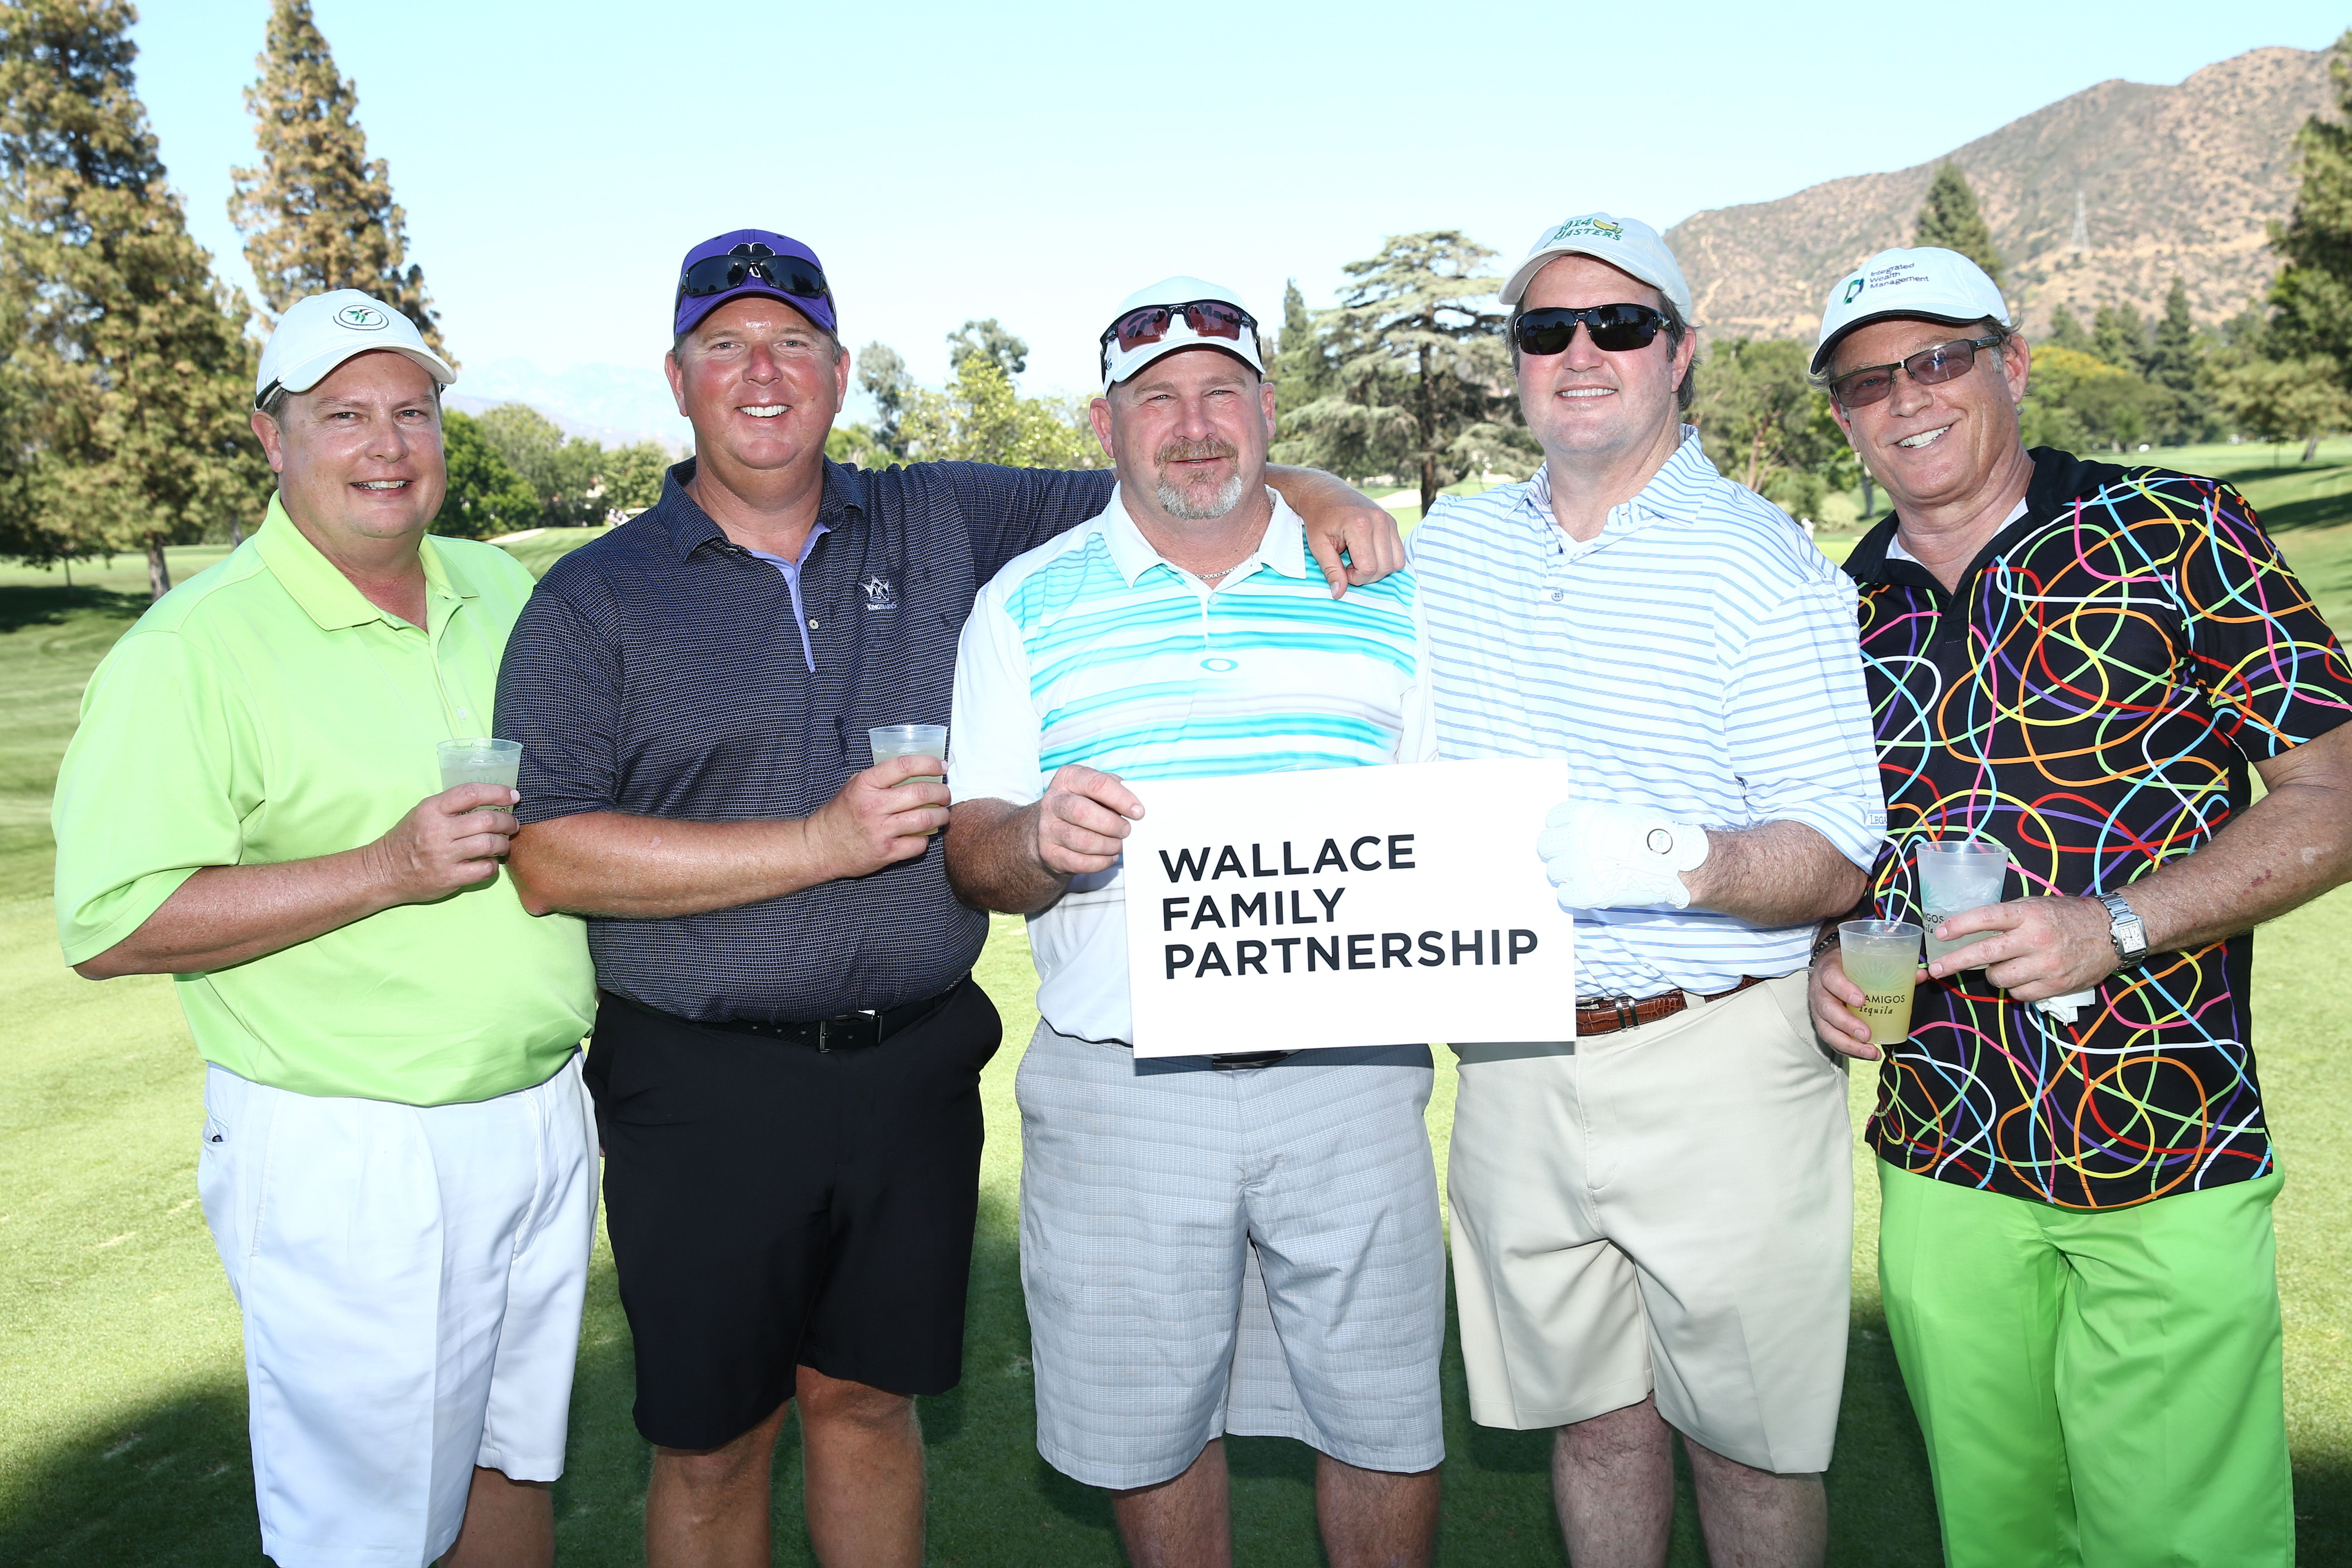 Mike Wallace, Kyle Lewis, Kelly Grunewald, Mark Dennis, and Chris Rich of Team Wallace Family Partnership play at the Screen Actors Guild Foundation's 6th Annual Los Angeles Golf Classic on June 8, 2015 in Burbank, California. (Photo by Mark Davis/Getty Images for The Screen Actors Guild Foundation)